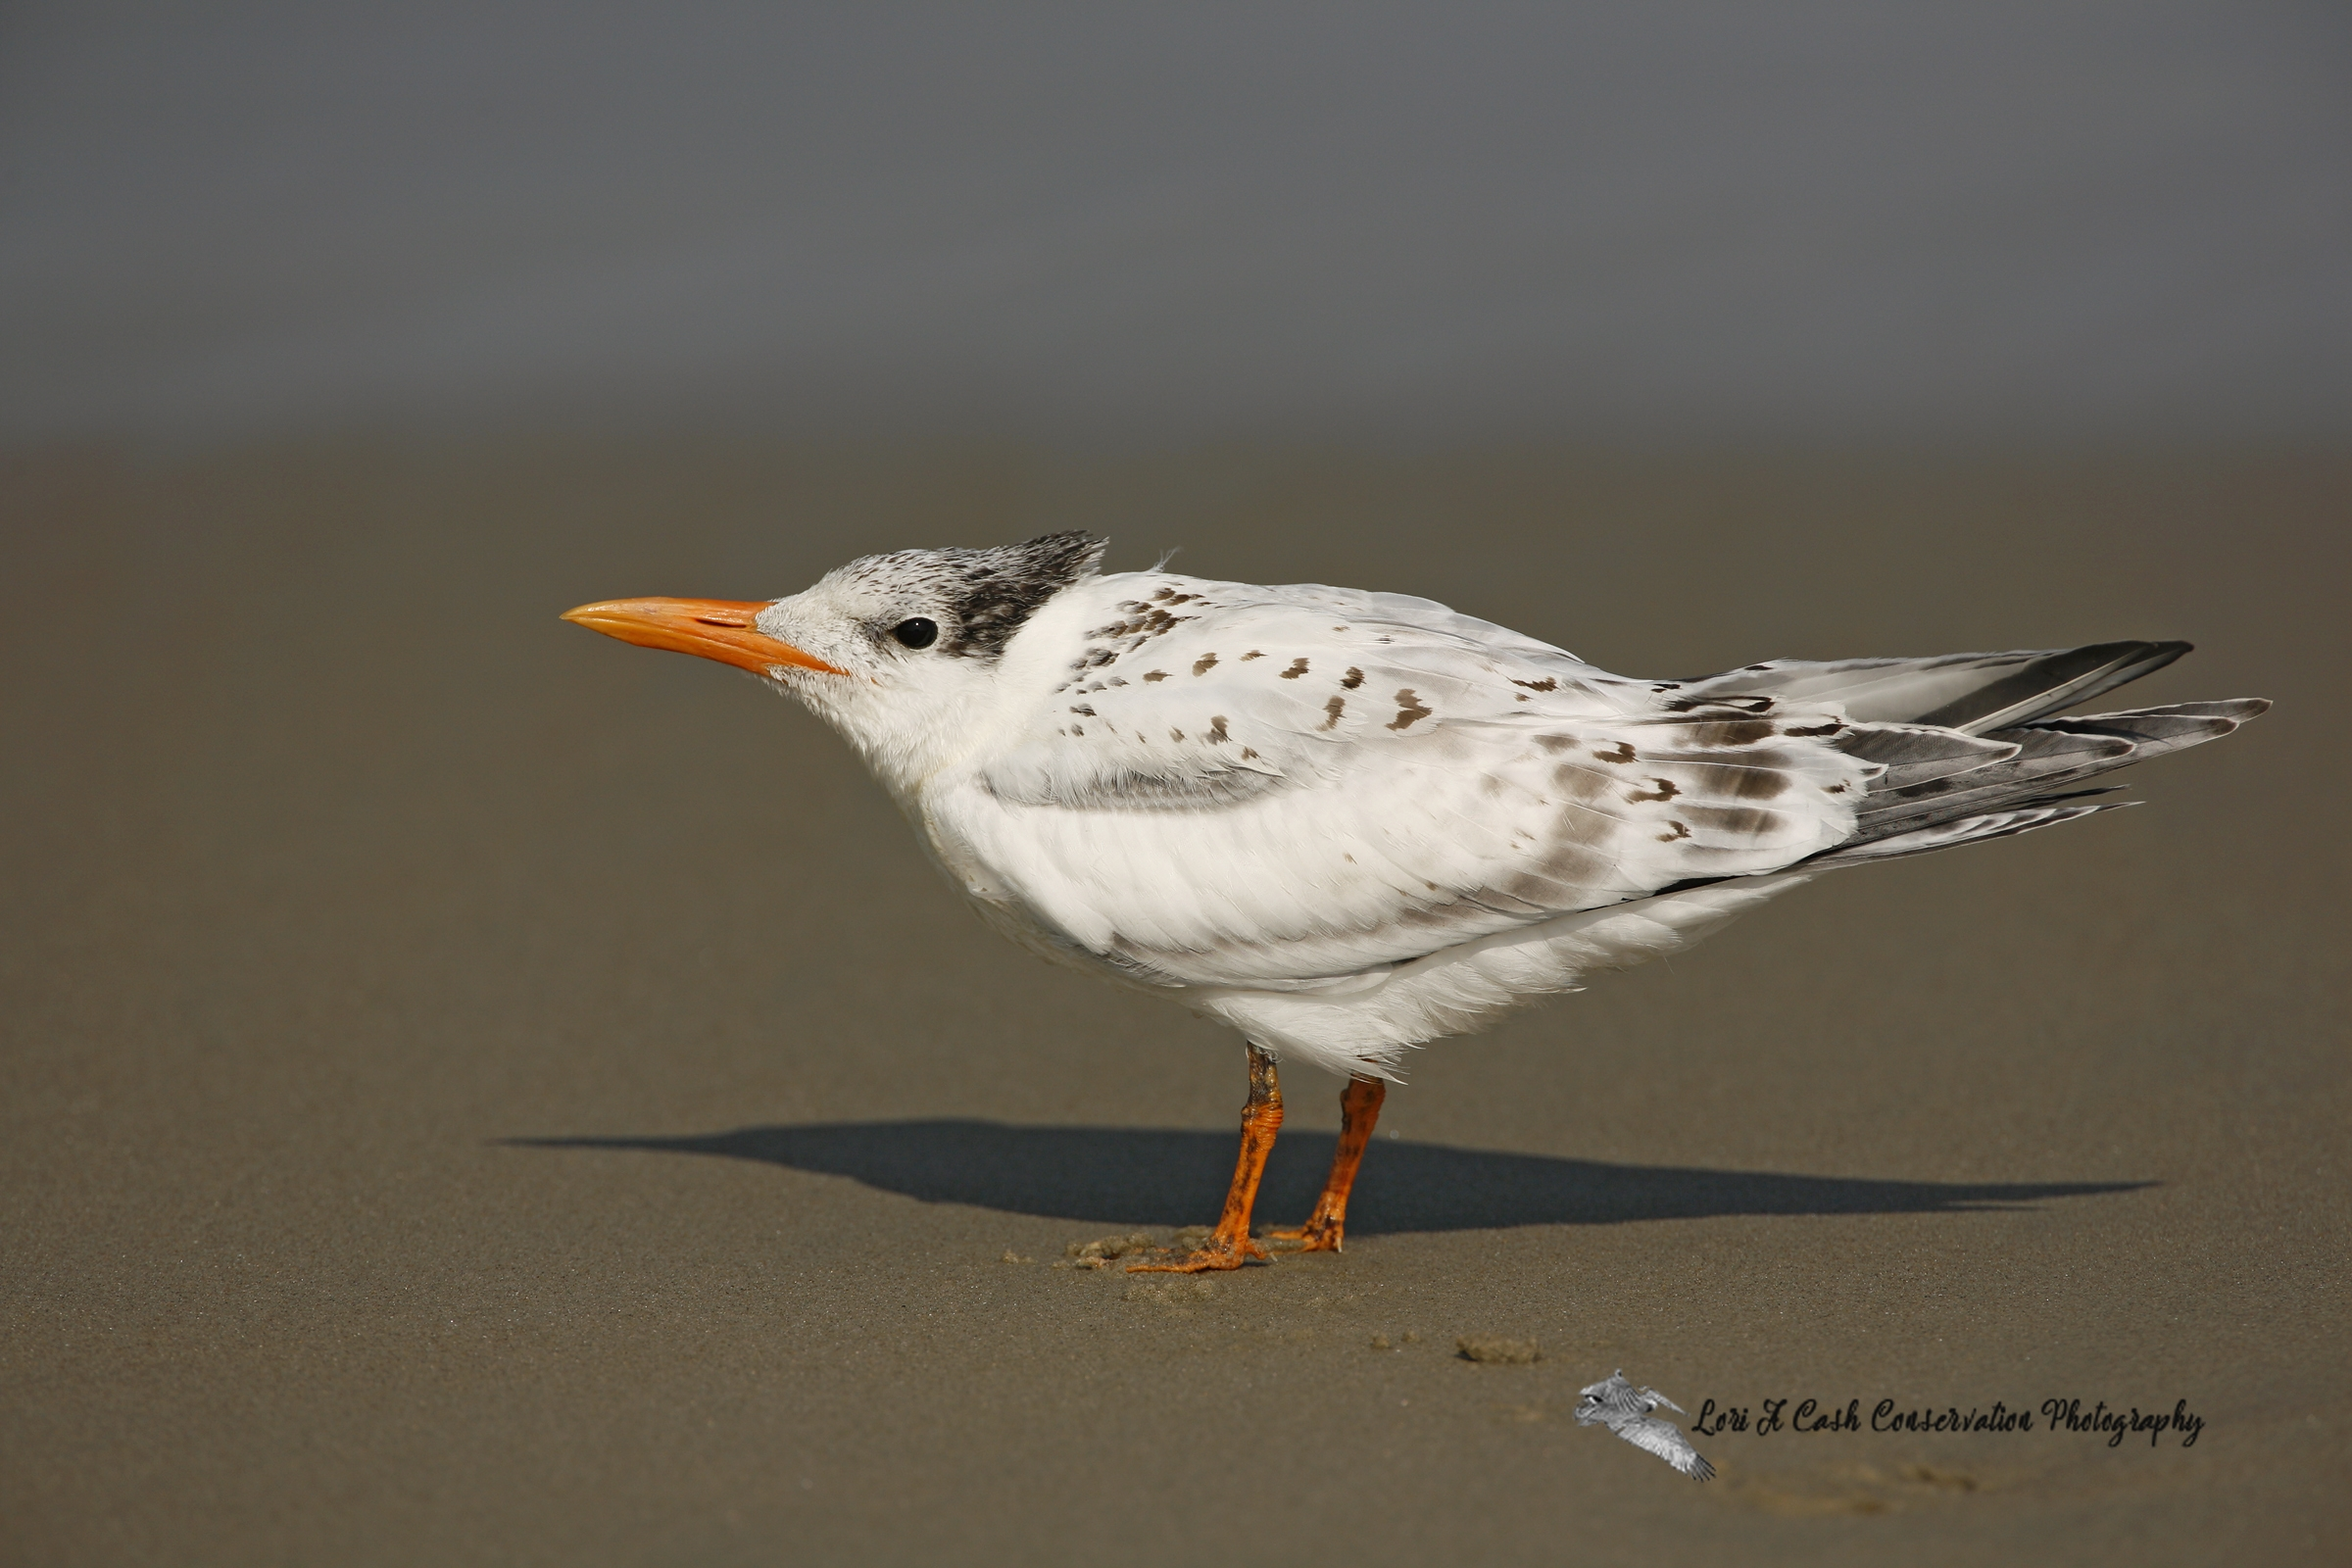 Royal tern immature standing on the beach near the surf at Carova on the Outer Banks of North Carolina.